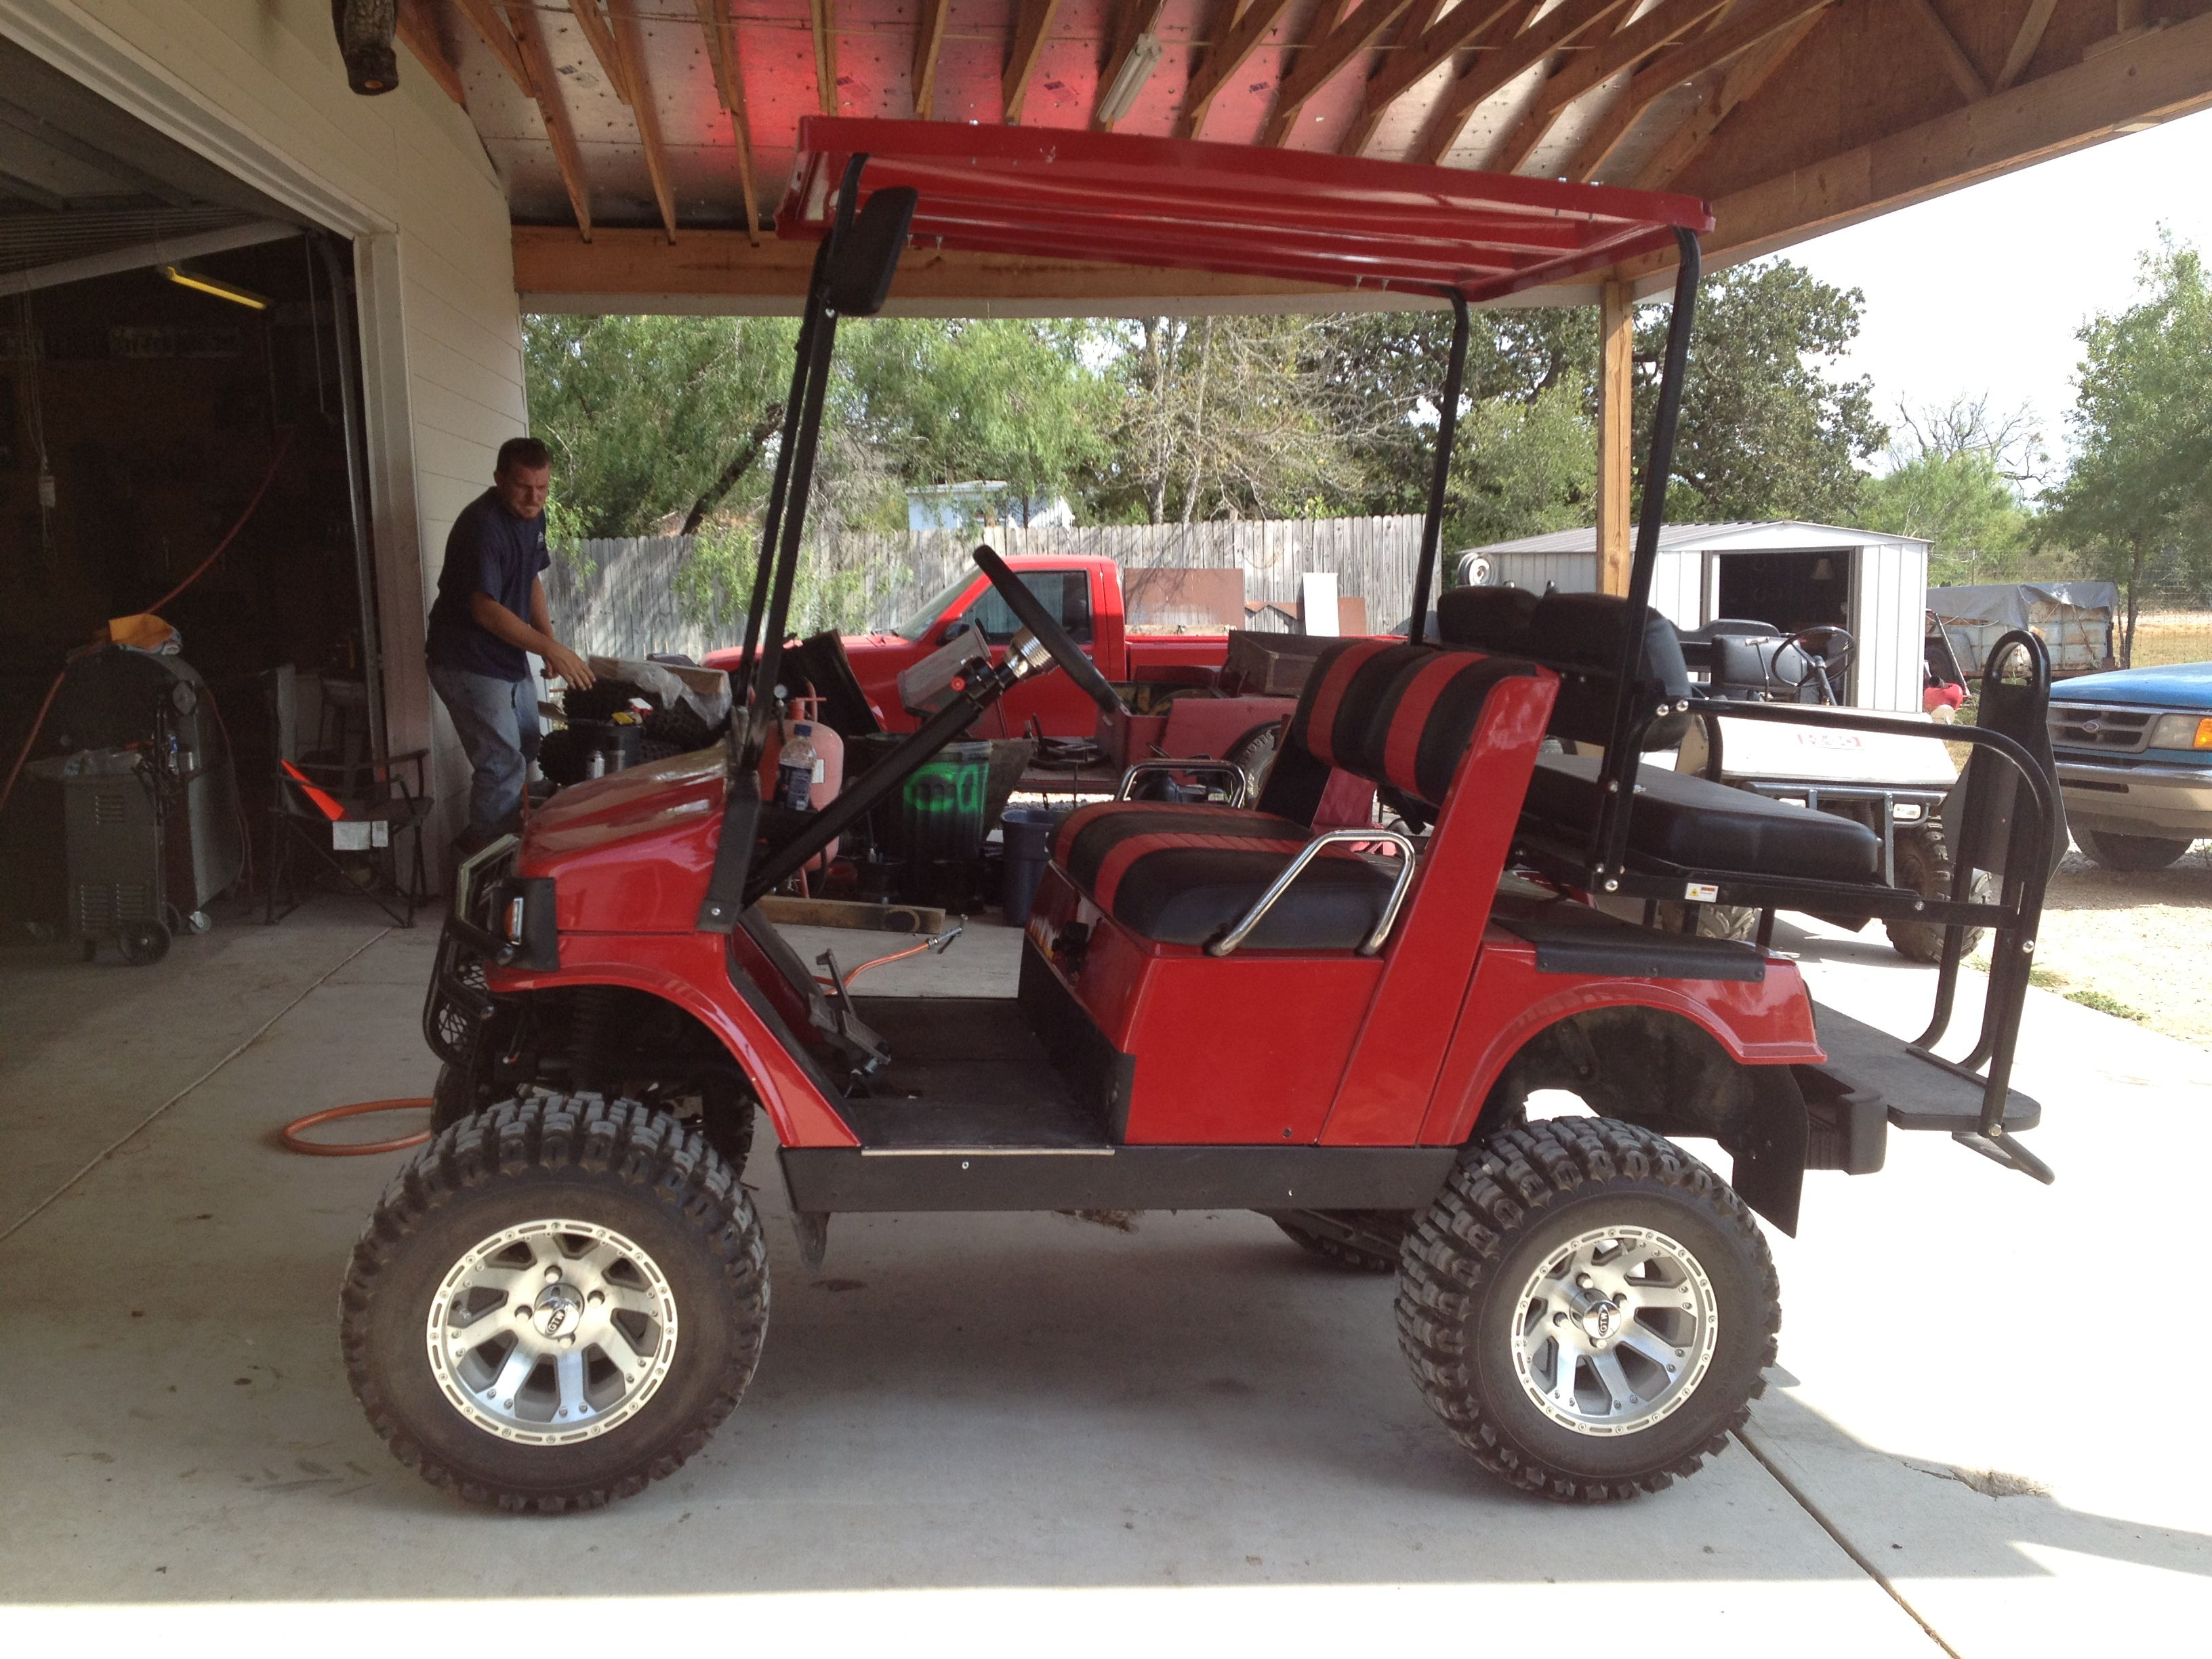 yamaha golf cars g9 gas wiring diagram yamaha g9 friese customs style  with images  golf carts  golf  yamaha g9 friese customs style  with